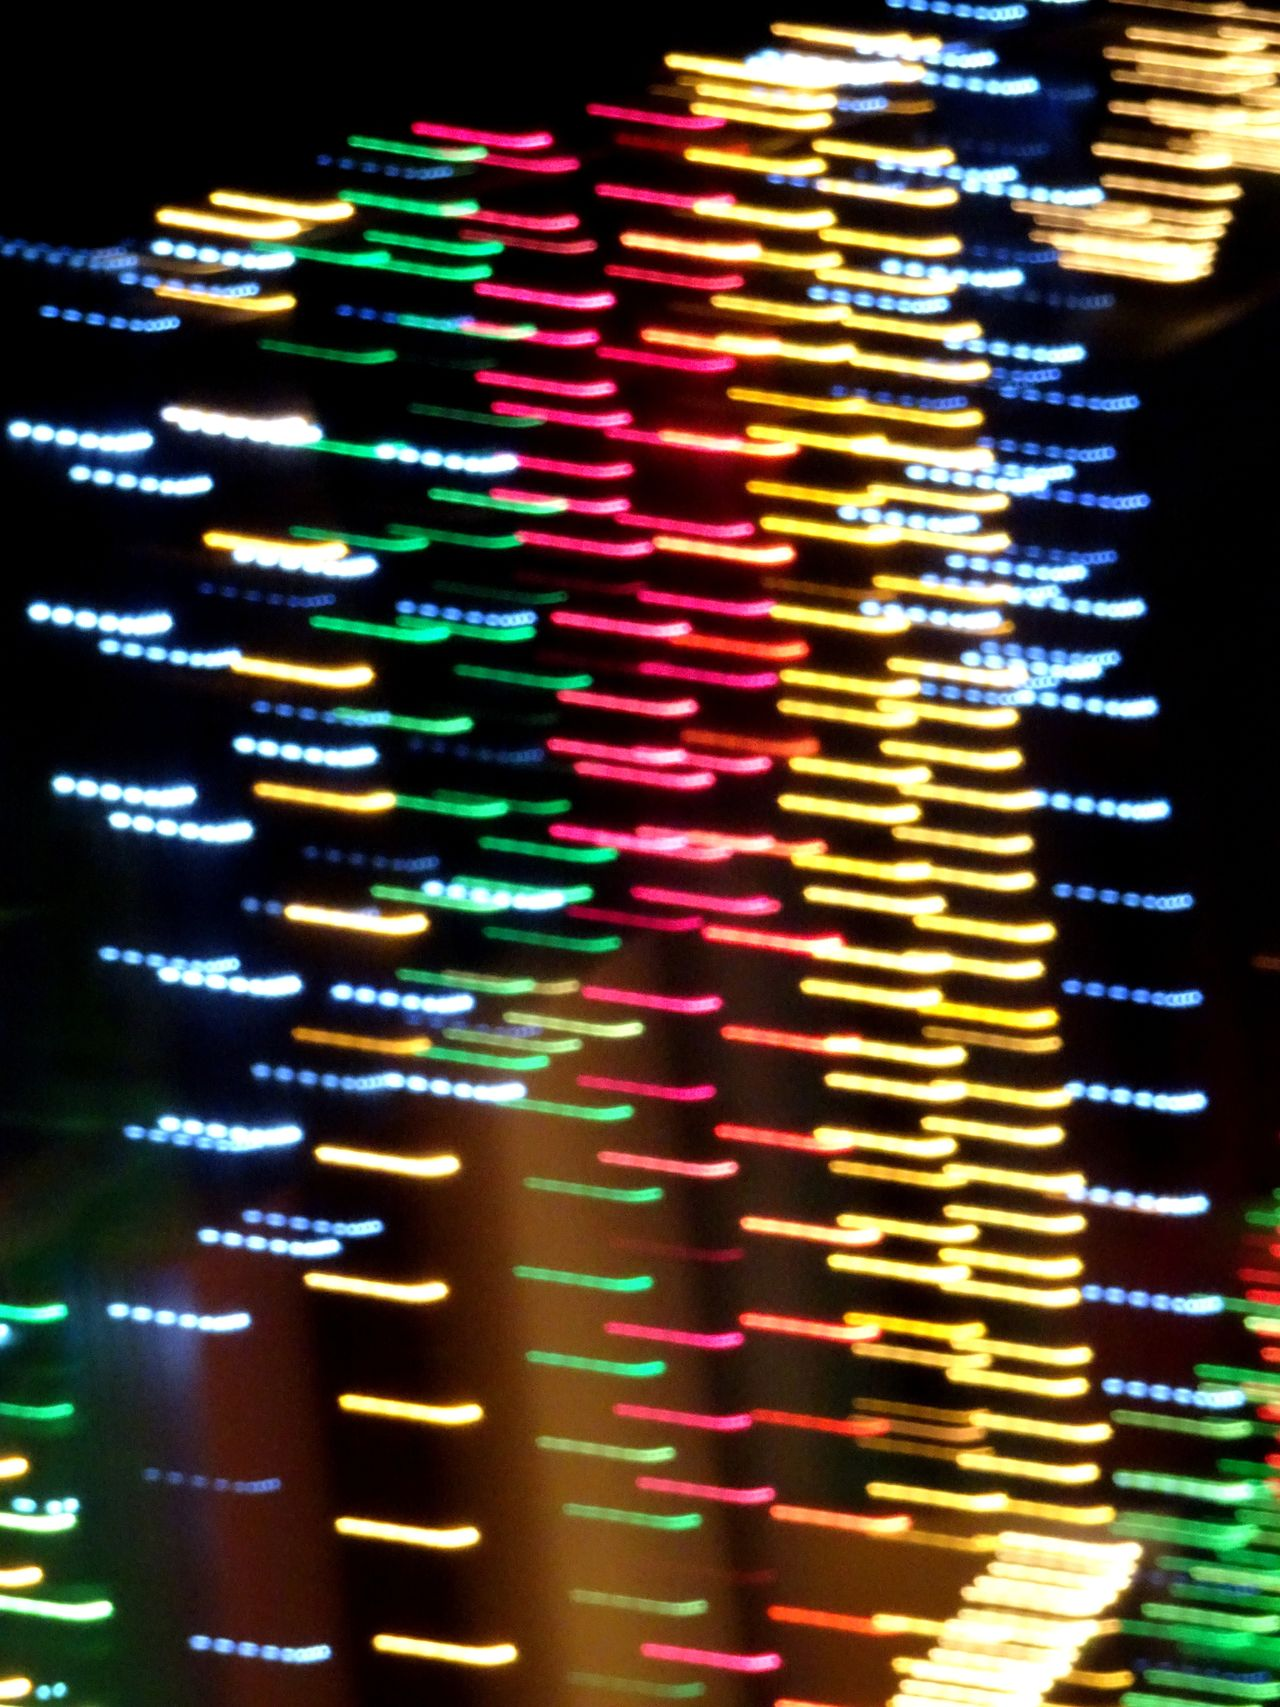 Pattern No People Nightphotography Night Lights Motion Picture Motion Photography Lighting Equipment Light And Shadow Lense Flare Designer4life Indoors  Colors Of Life Colors Of Festival Red Light Close-up Light Photography Motion Blur Diwali Night.... :-* Black Background Illuminated Diwali Lights Light And Reflection City Diwali Celebration